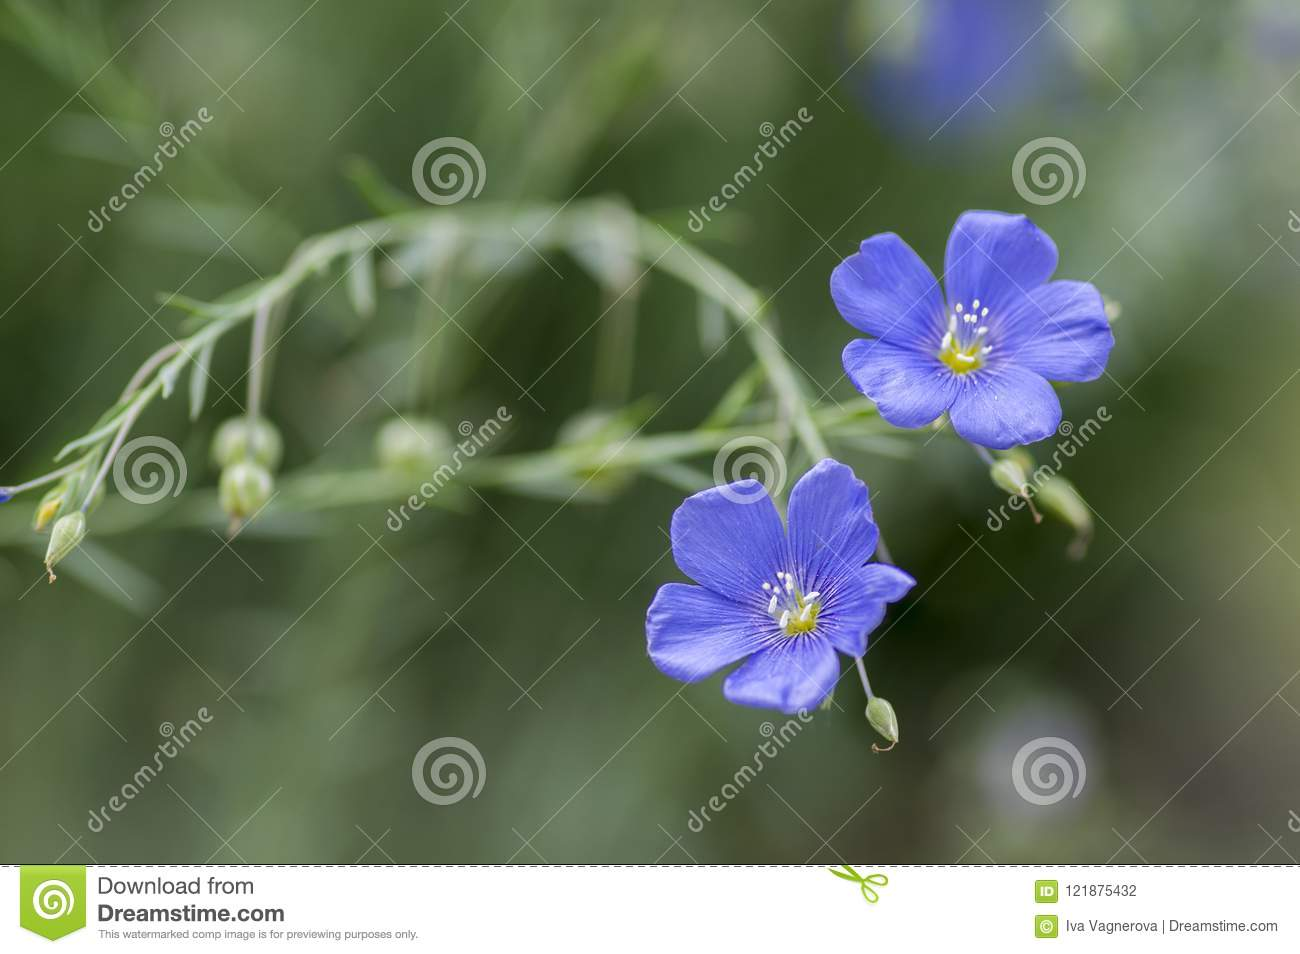 Linum lewisii perennial ornamental beautiful flowers bright light linum lewisii perennial ornamental beautiful flowers bright light blue flowering plant izmirmasajfo